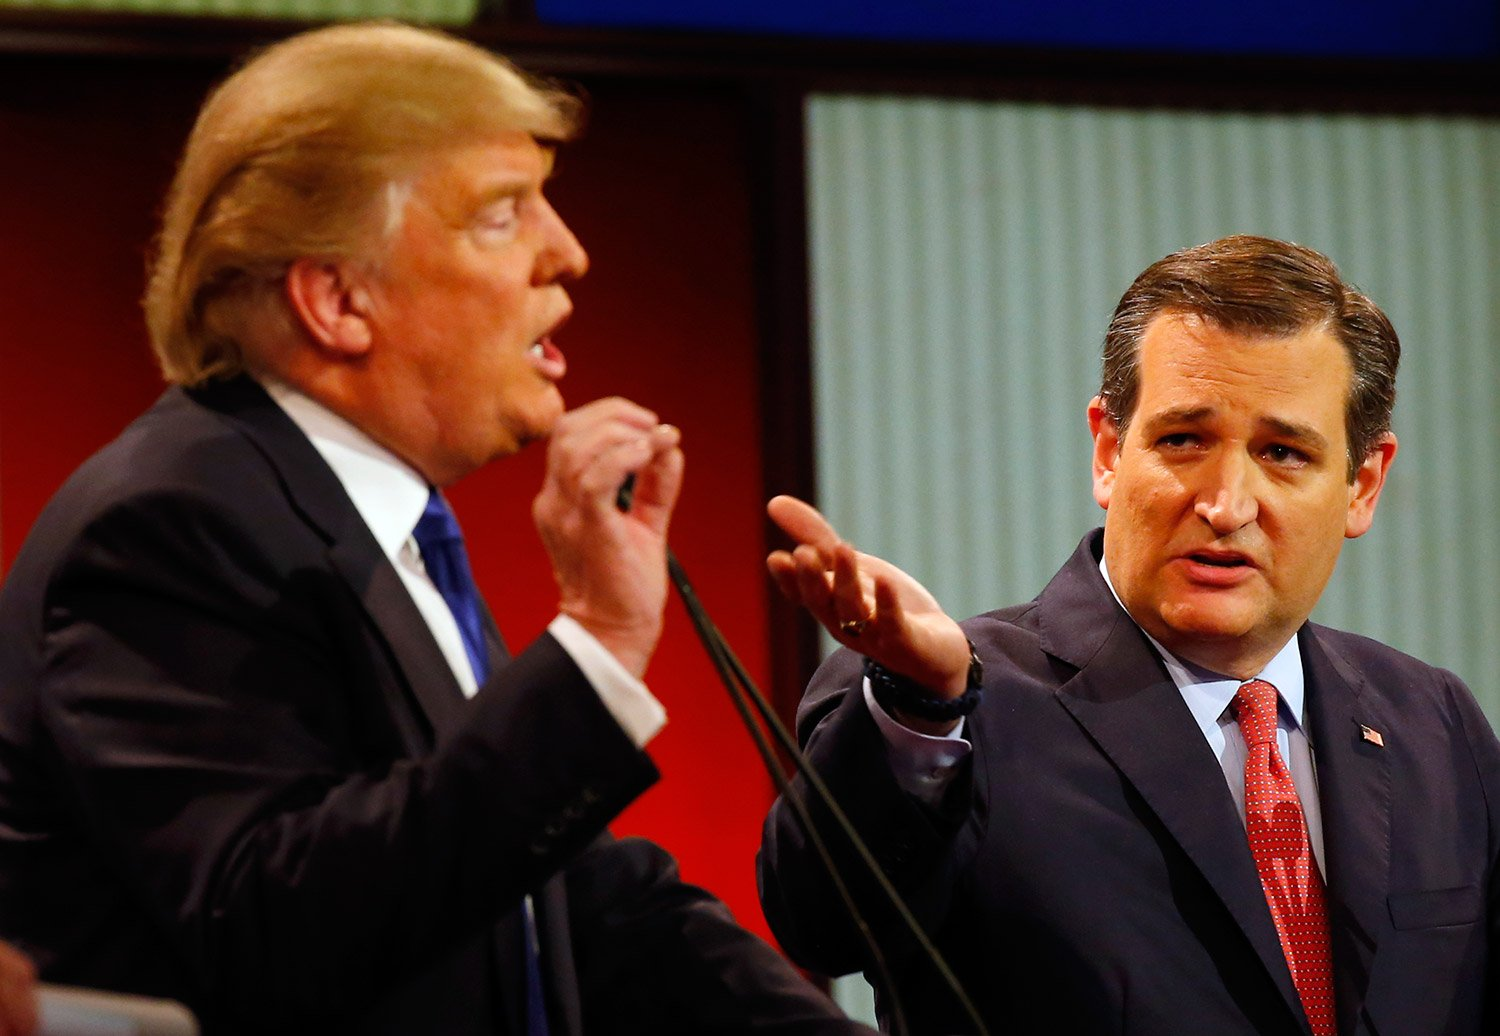 Donald Trump and Ted Cruz argue a point during Thursday night's heated debate. The Associated Press